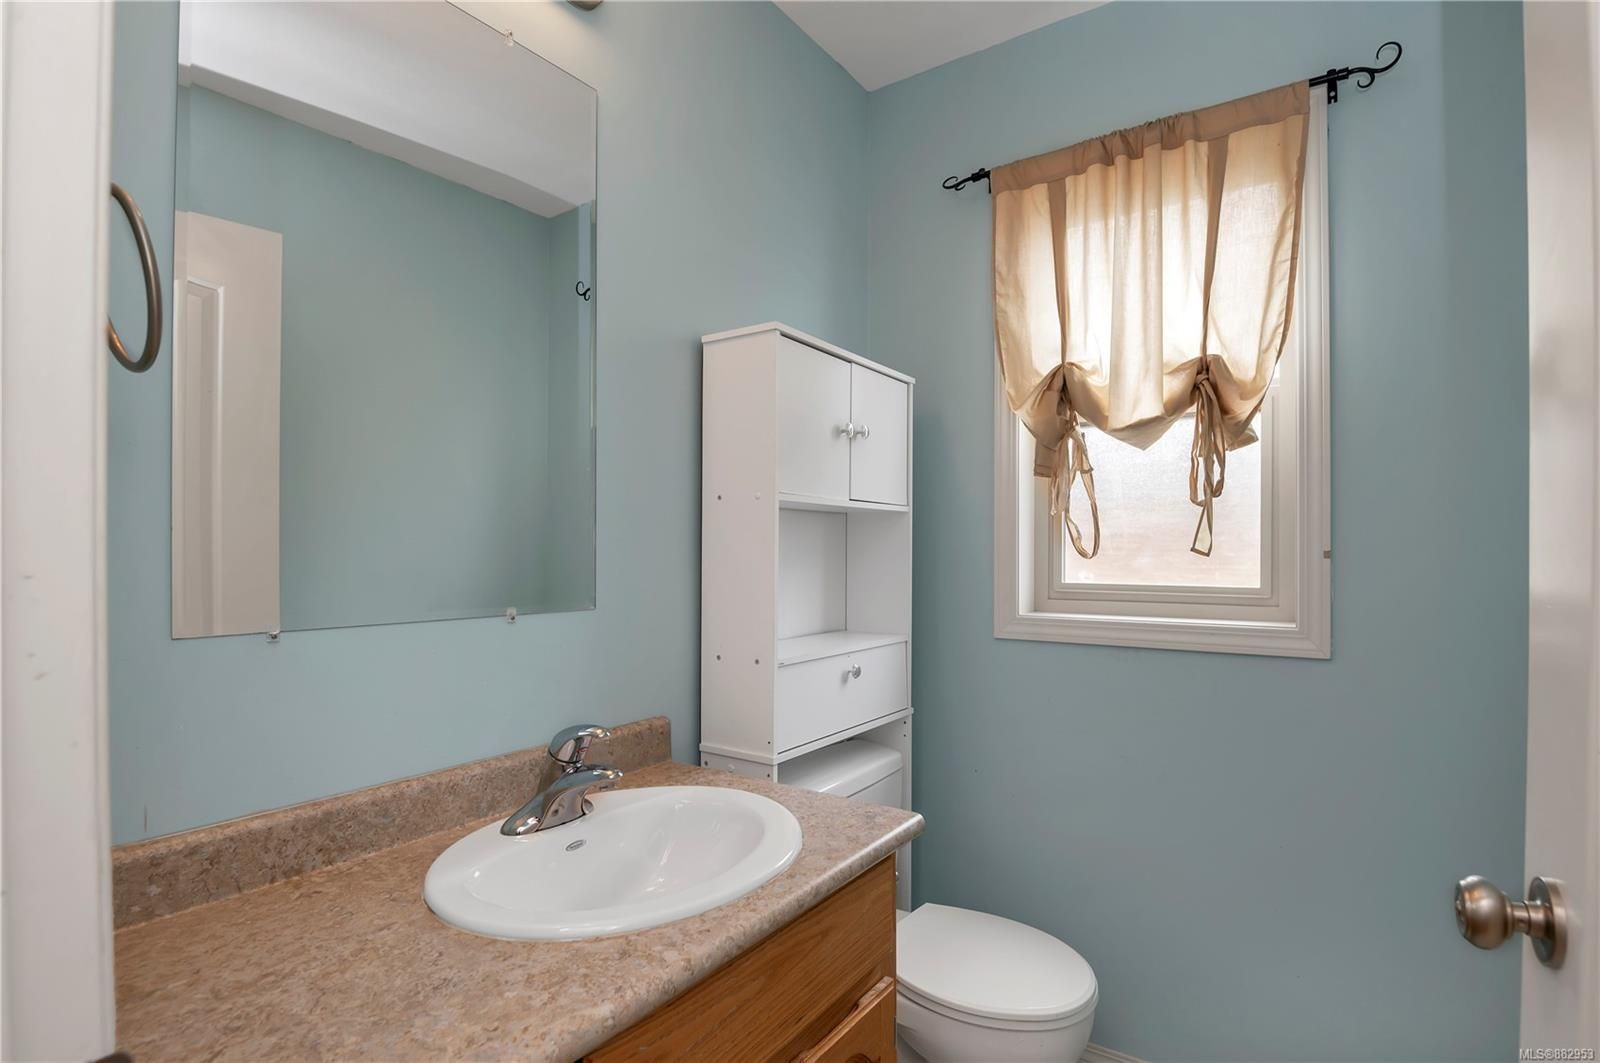 Photo 18: Photos: 732 Oribi Dr in : CR Campbell River Central House for sale (Campbell River)  : MLS®# 882953